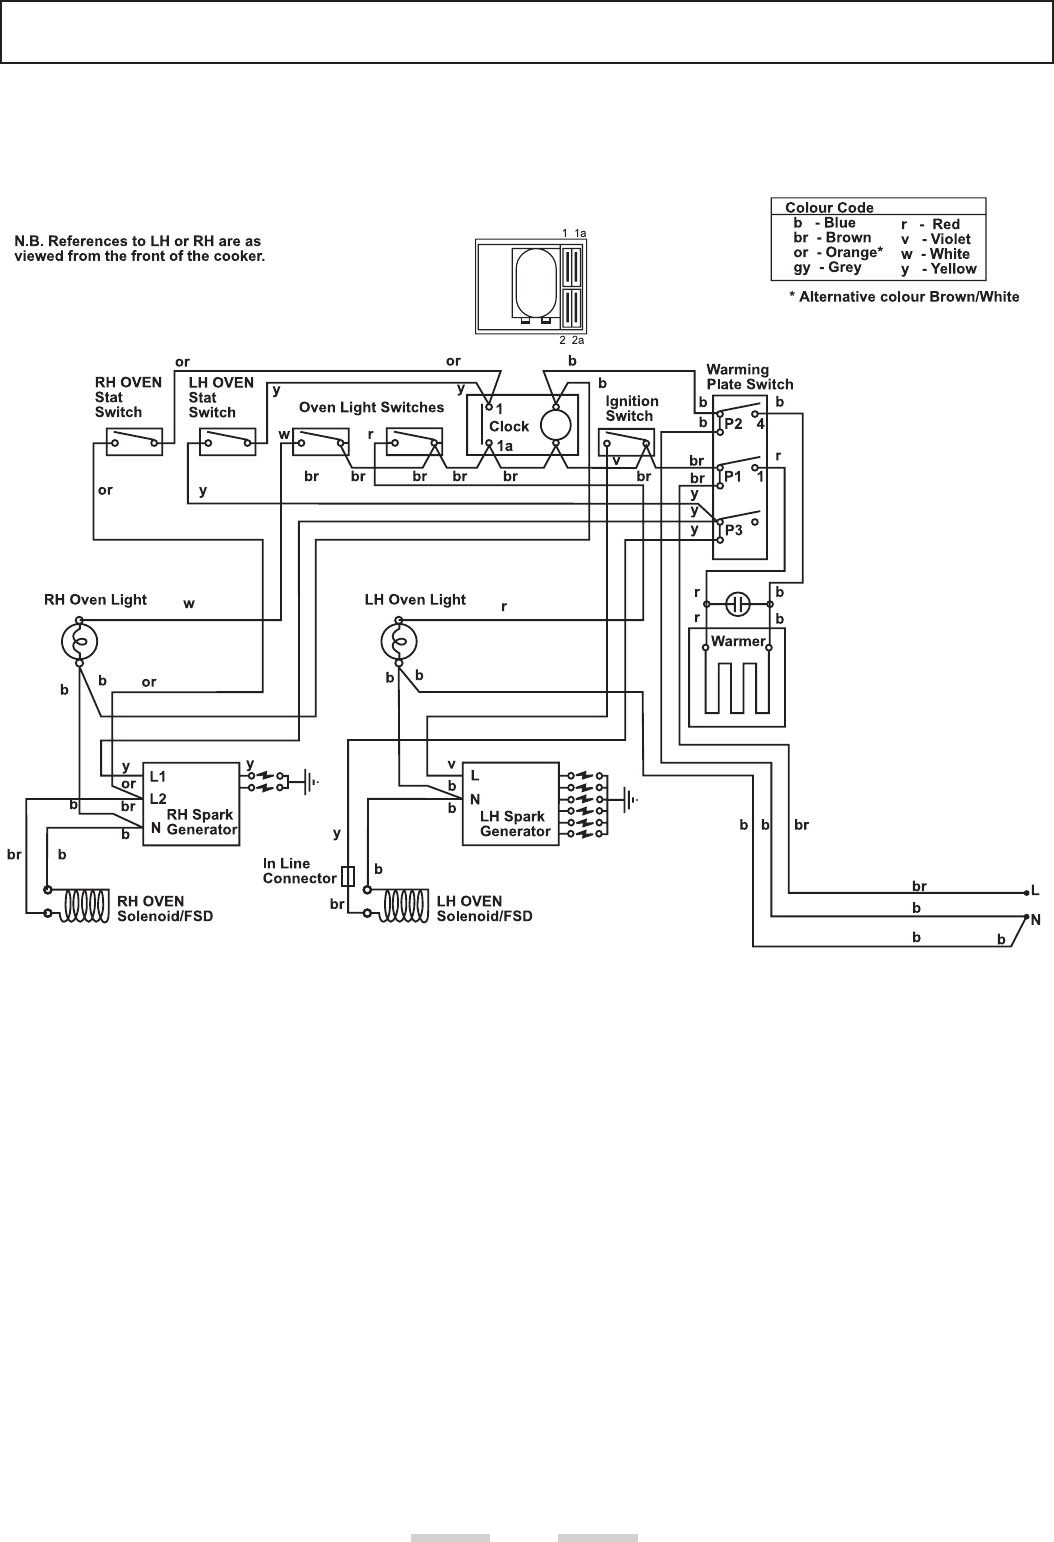 cooker hood wiring diagram u s government structure rangemaster 38